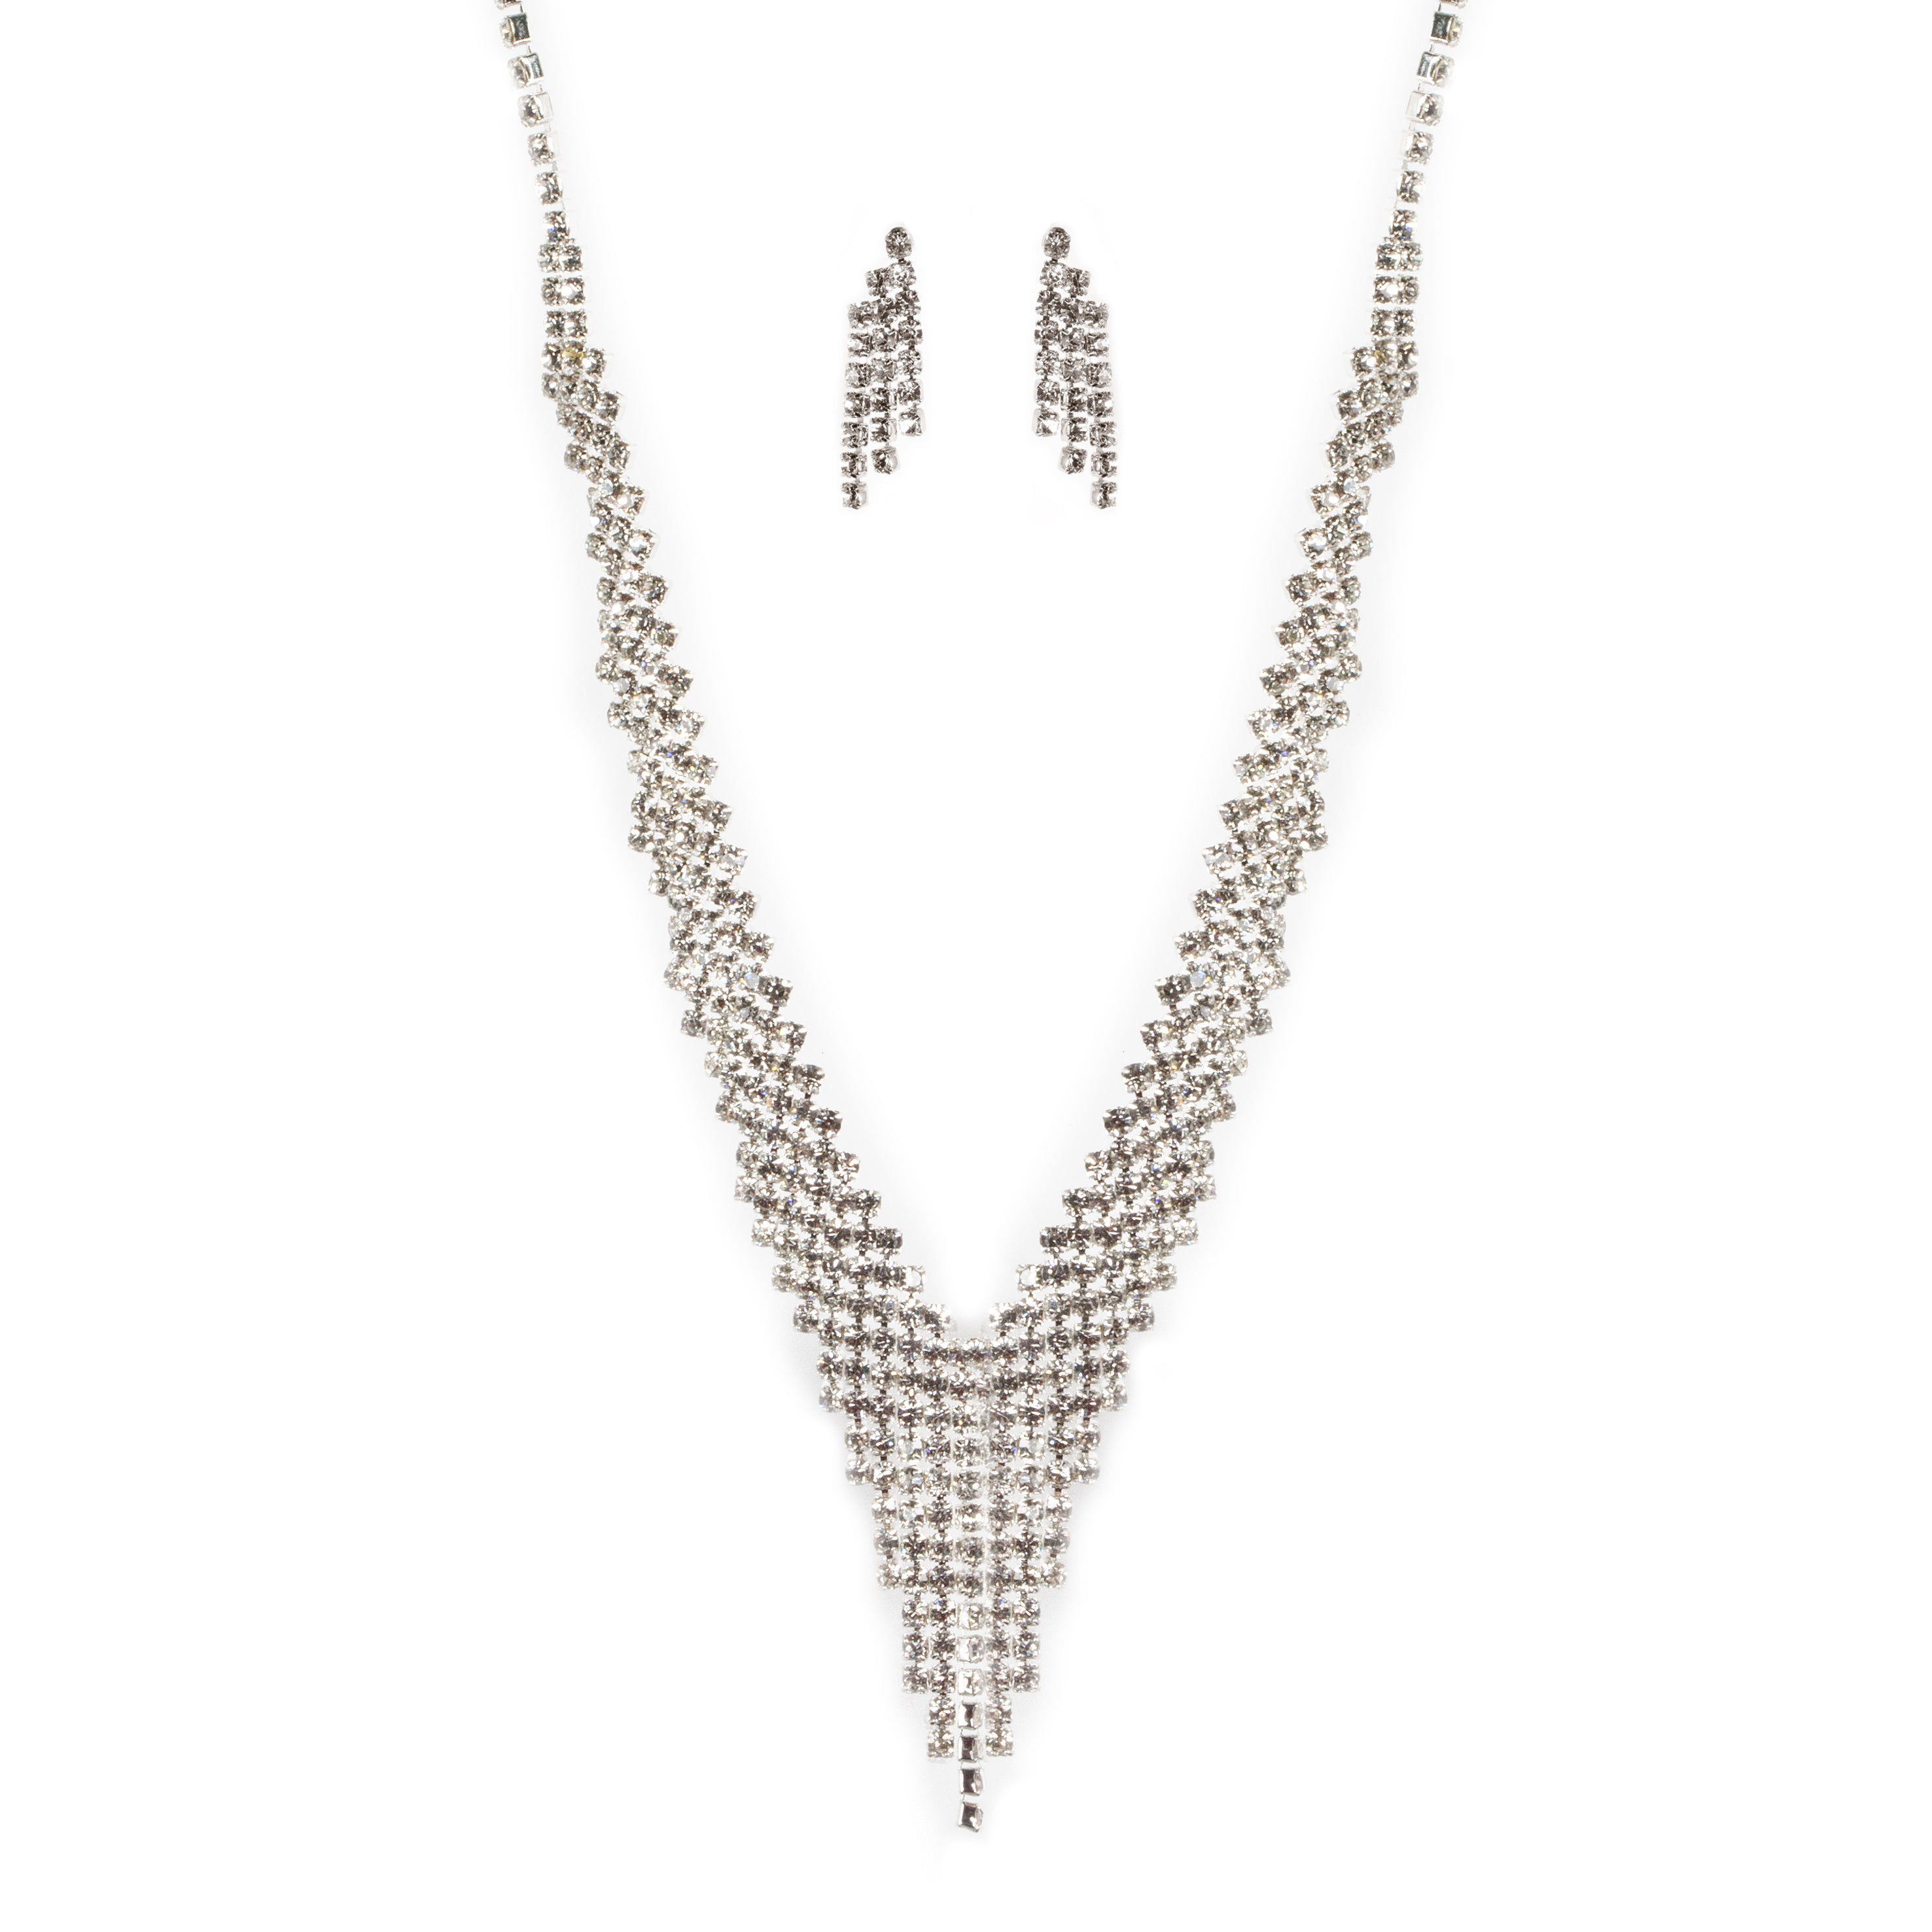 Rhinestone V Fringe Bridal Necklace Set